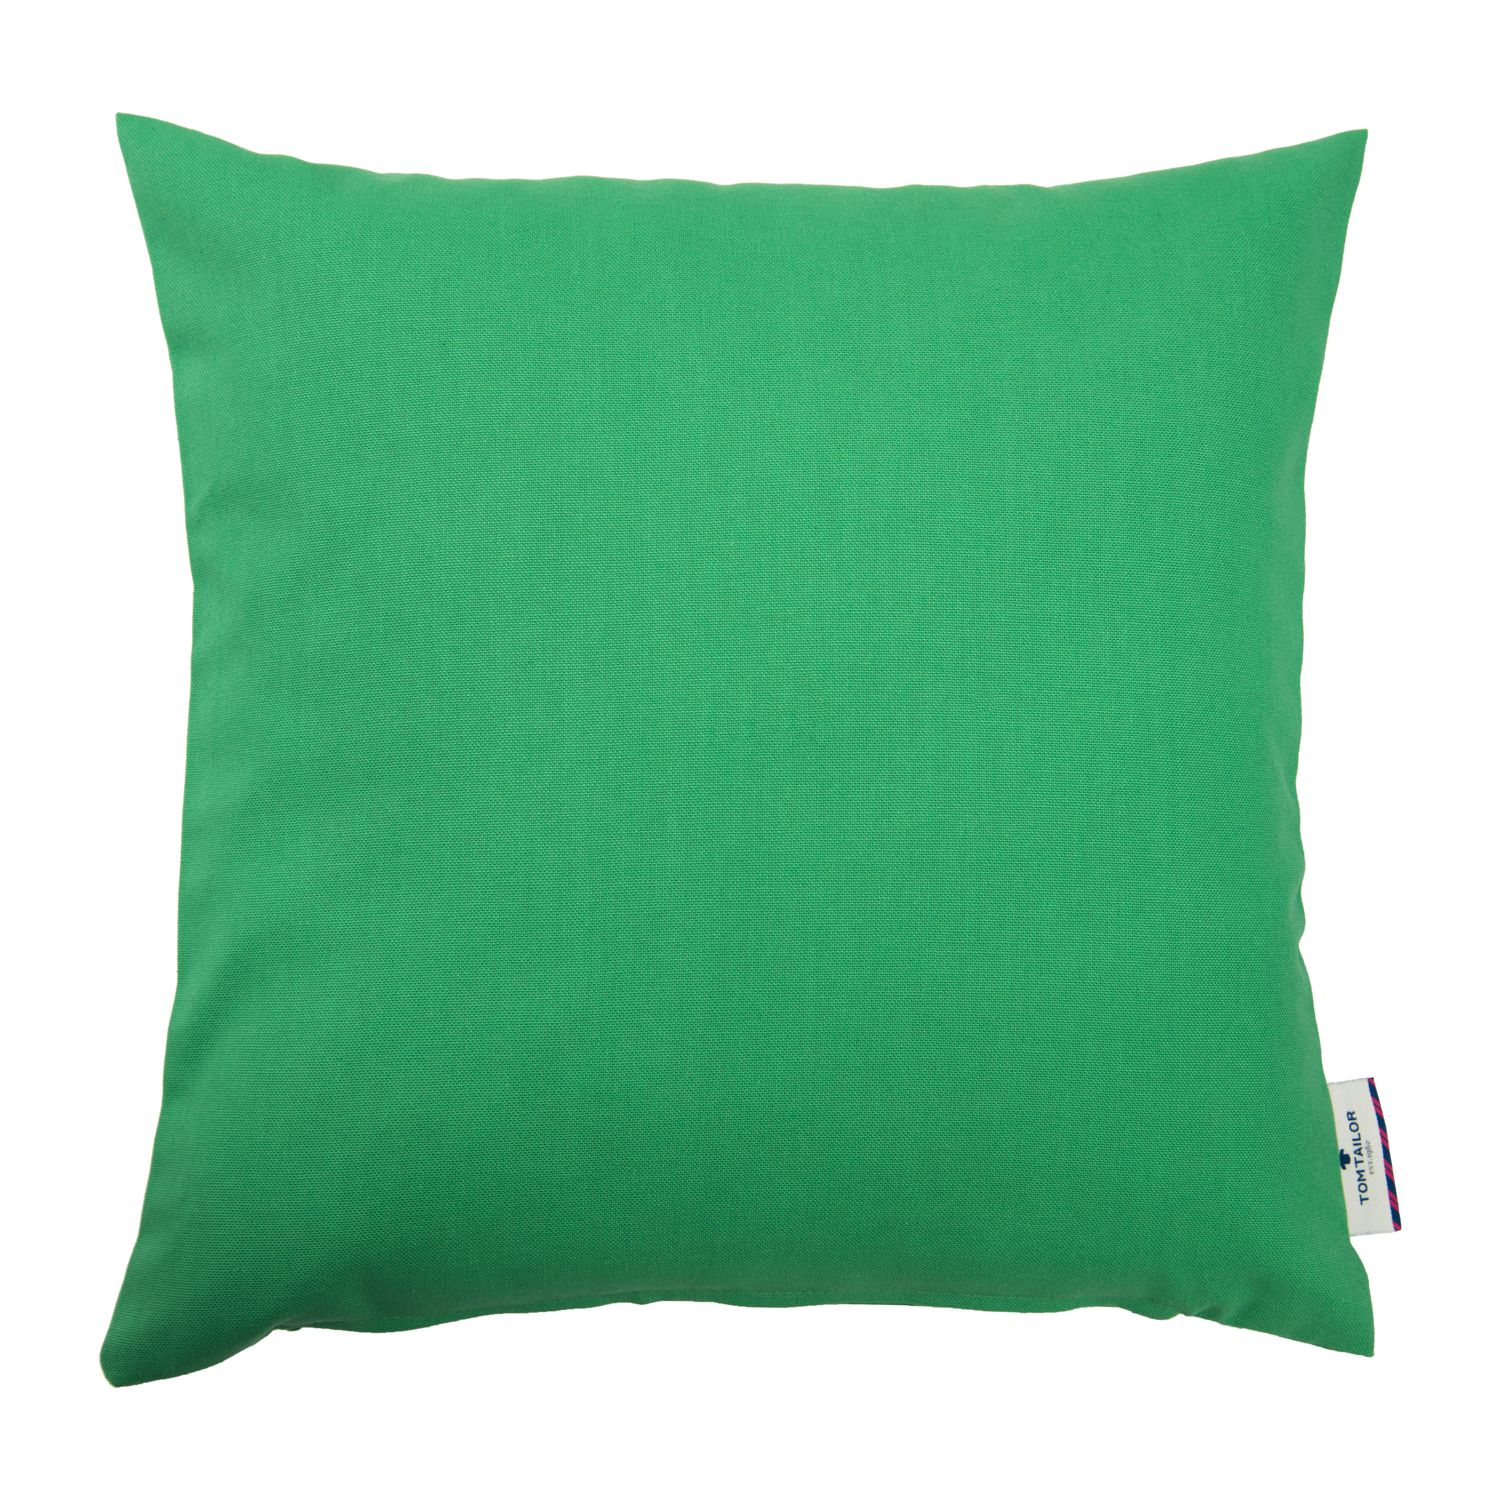 Home 24 - Housse de coussin t-dove - vert kelly - 40 x 40 cm, tom tailor